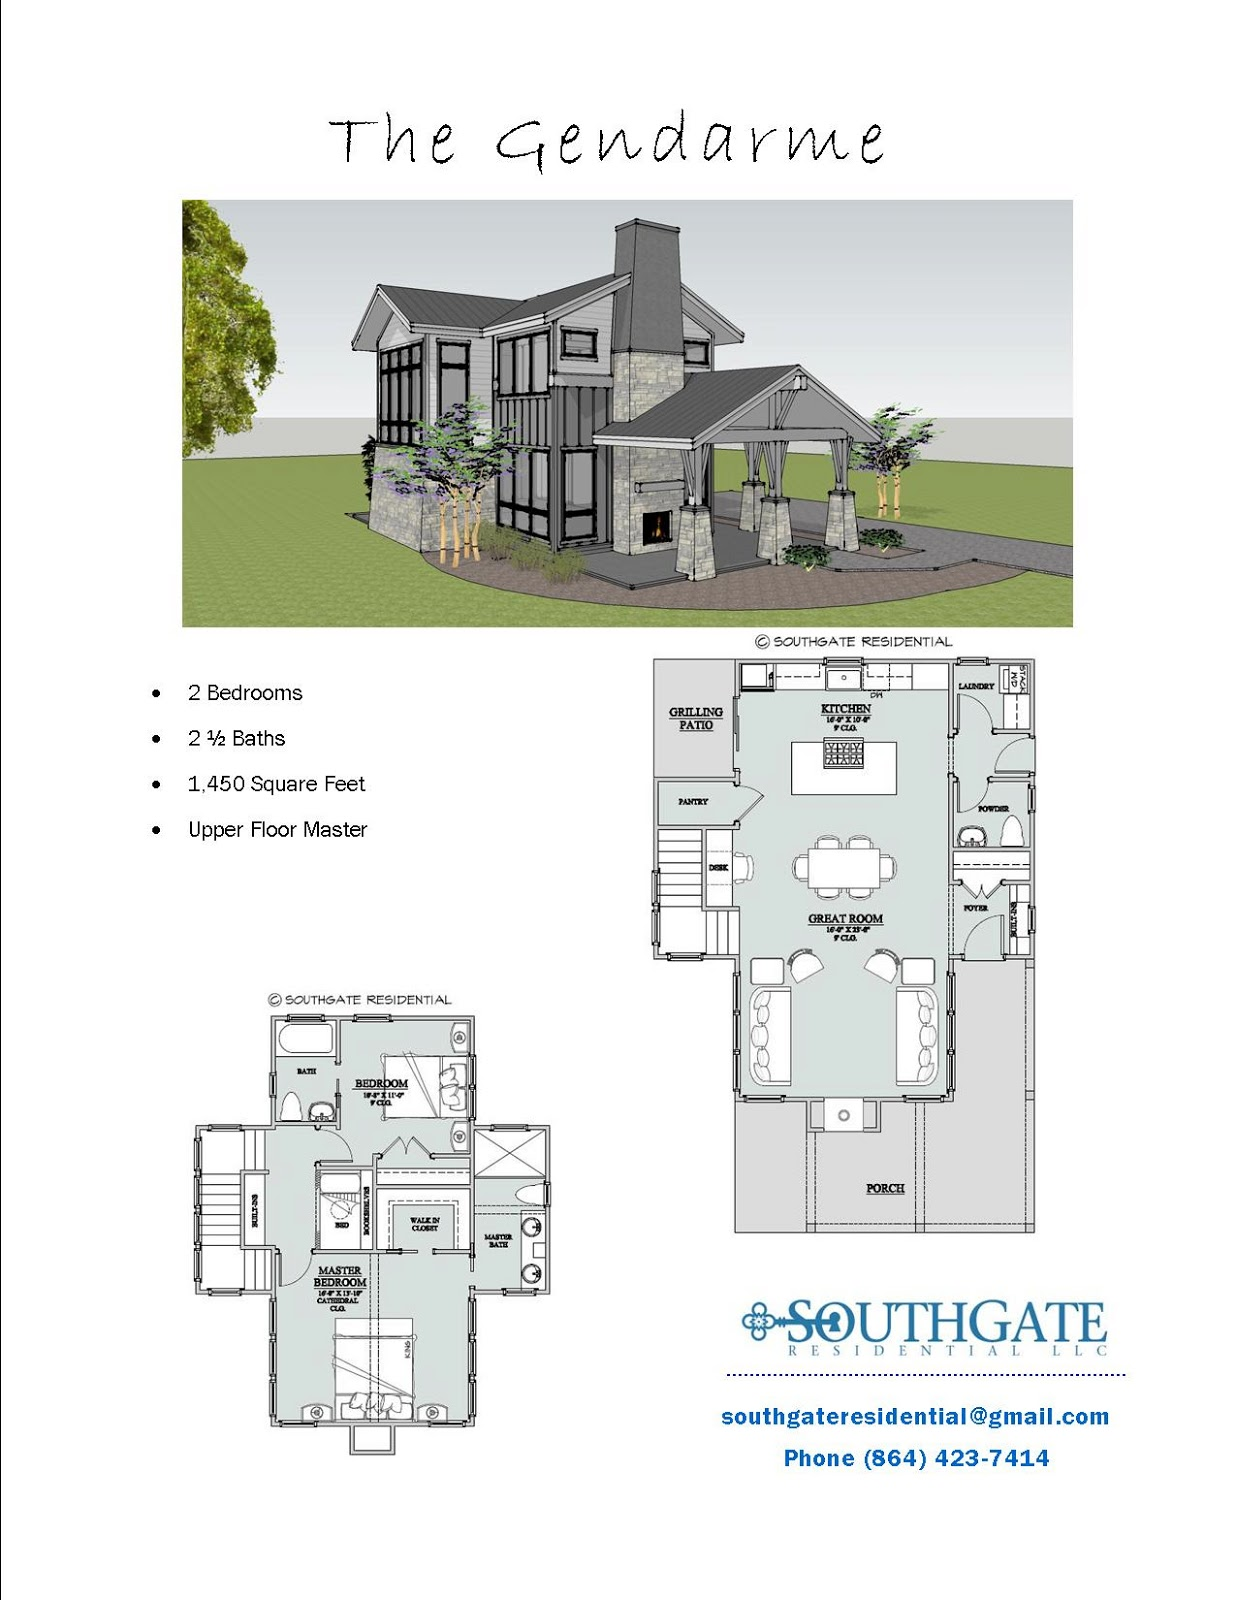 Southgate residential pre designed plans for Blueprints for homes already built